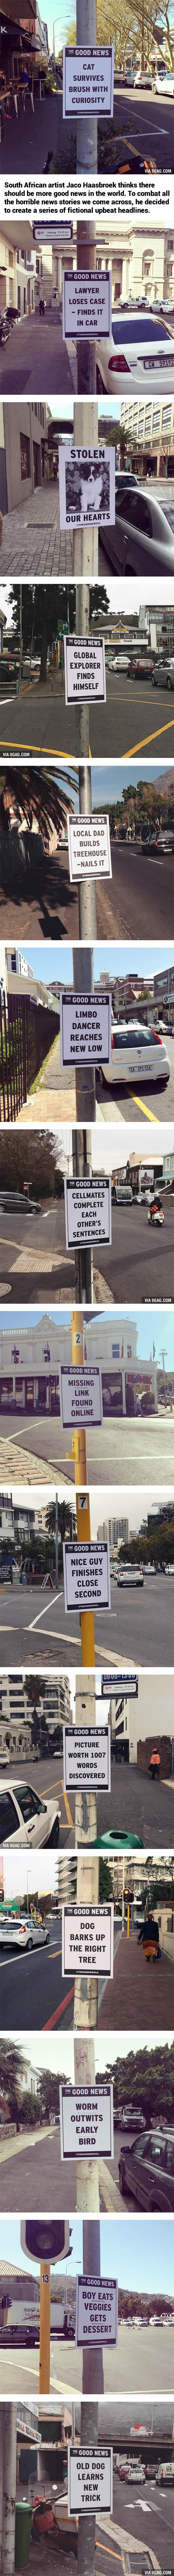 """Artist Delivers """"The Good News"""" With Upbeat Street Flyers"""